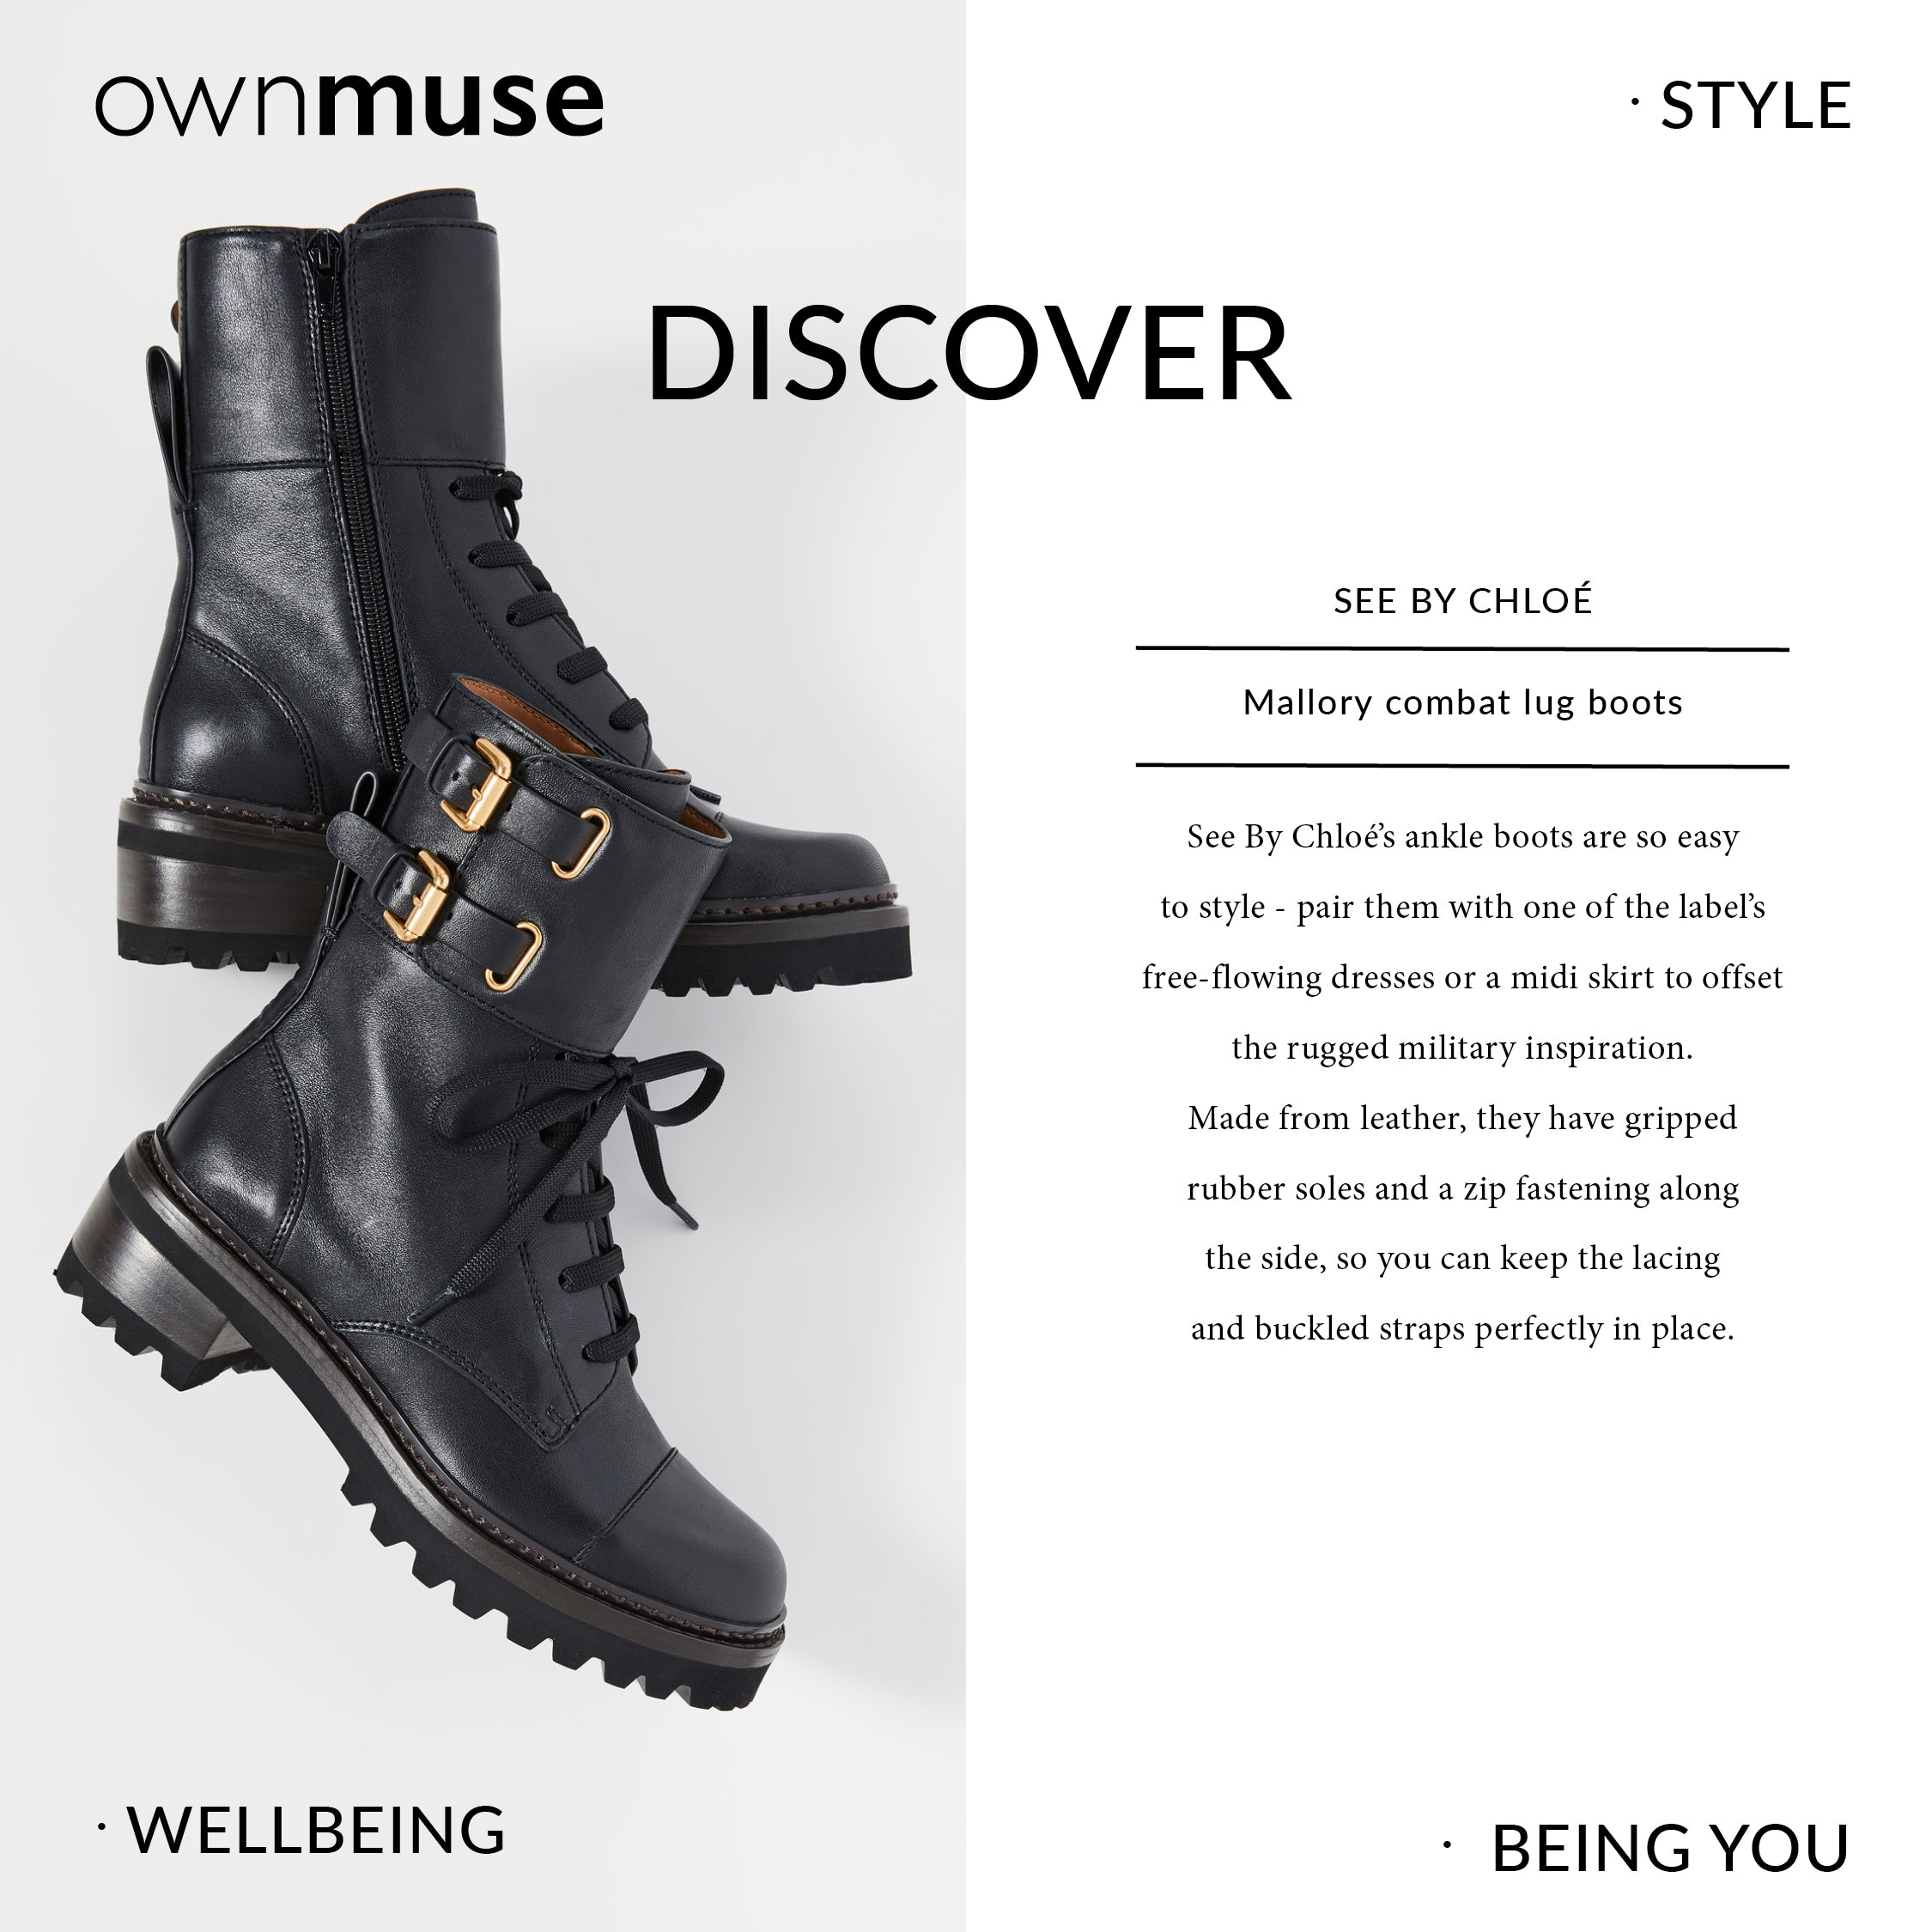 Boots - Capsule Wardrobe Collection - Always stylish black ankle boots